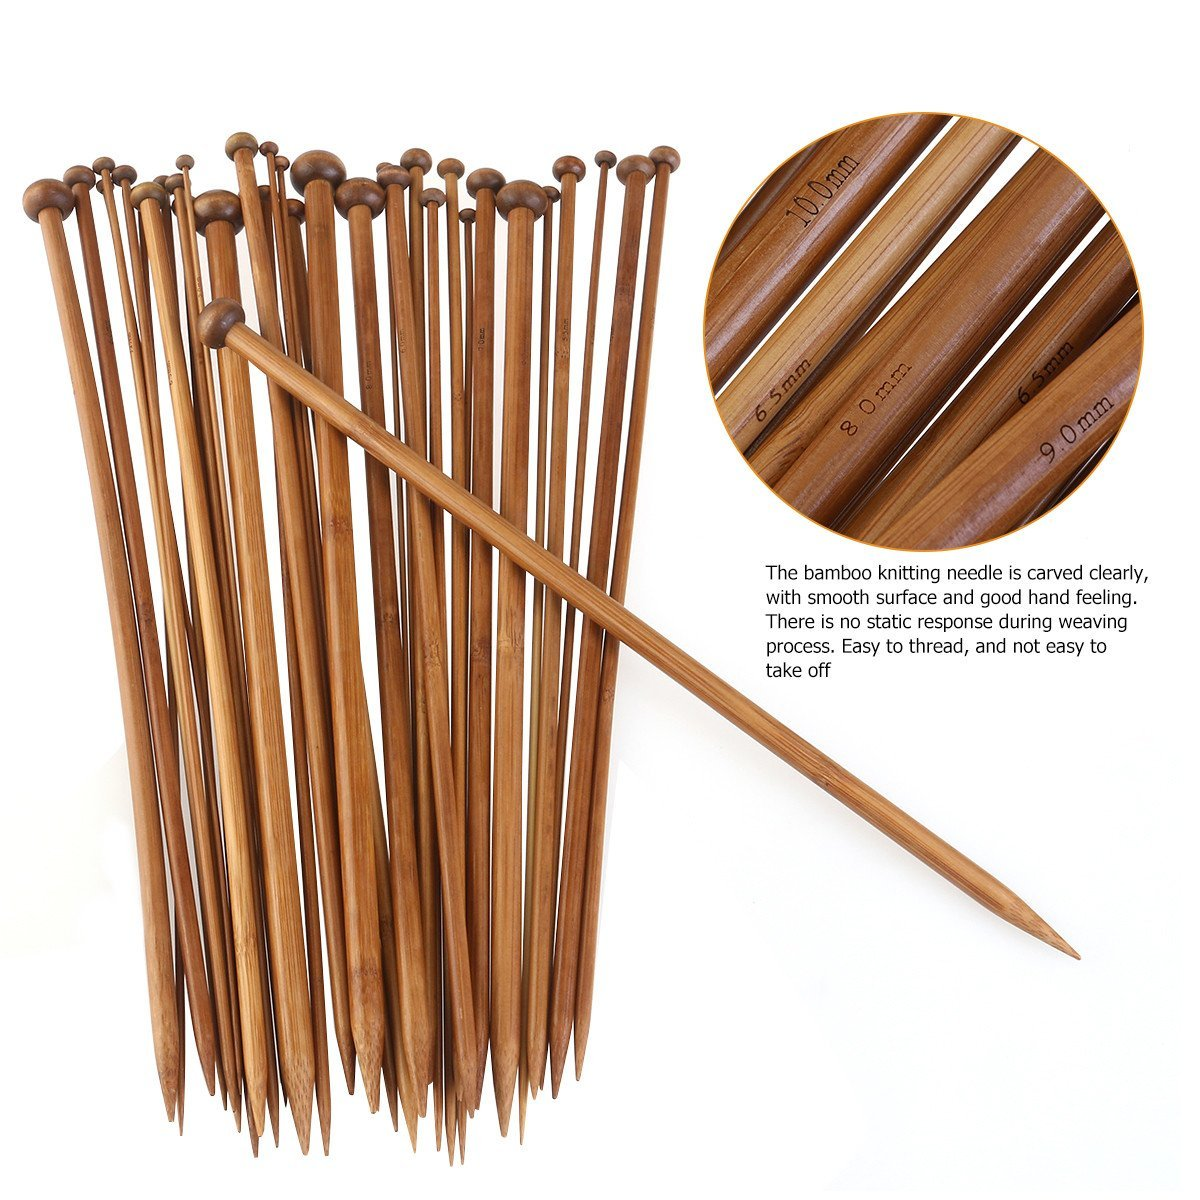 FOXNOVO 18 Pairs Professional Carbonized Bamboo Single Pointed Knitting Needles